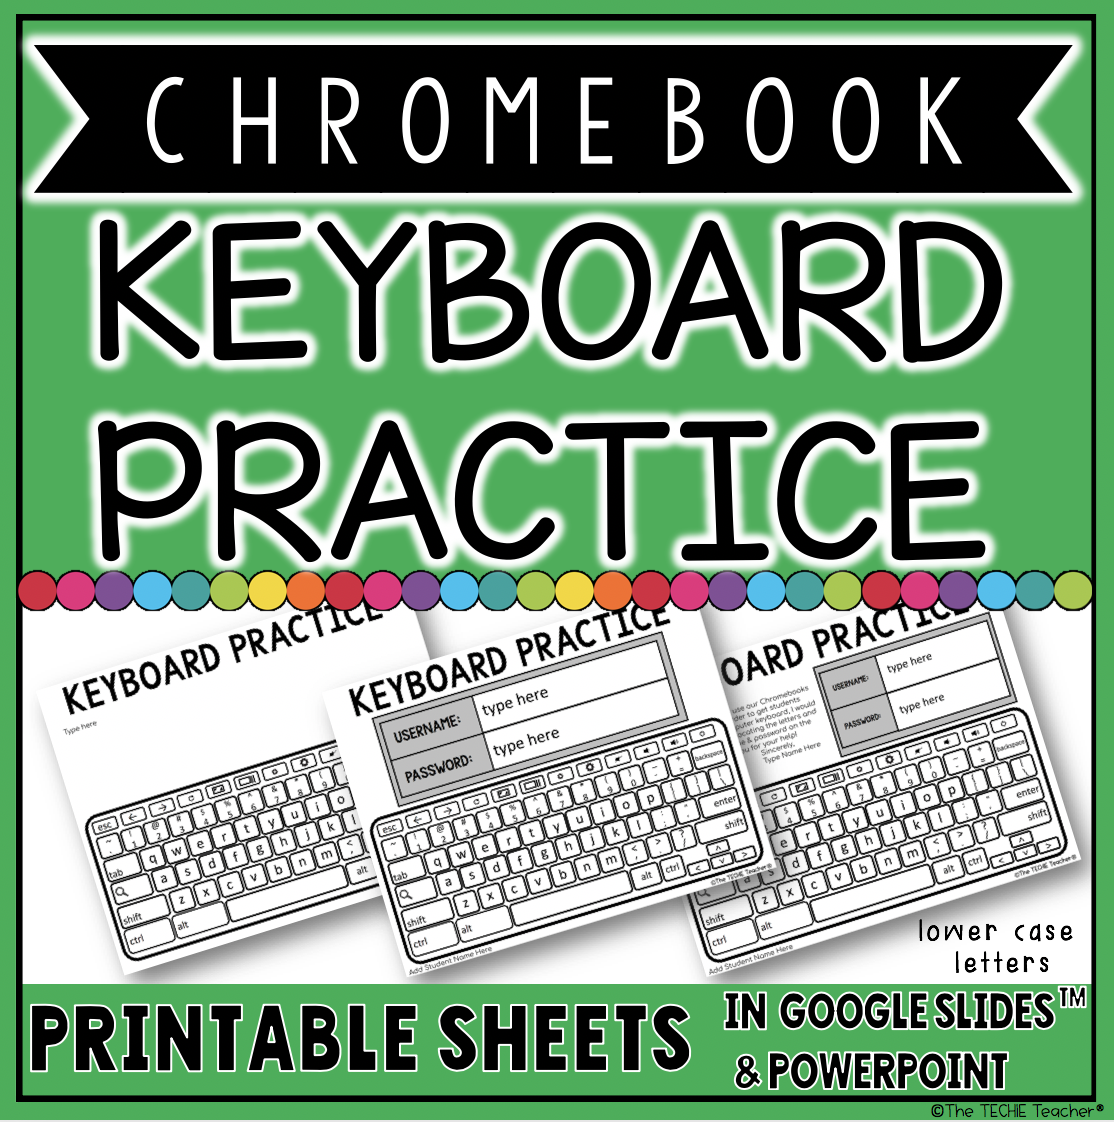 Chromebook Keyboard Practice Sheets for logging in